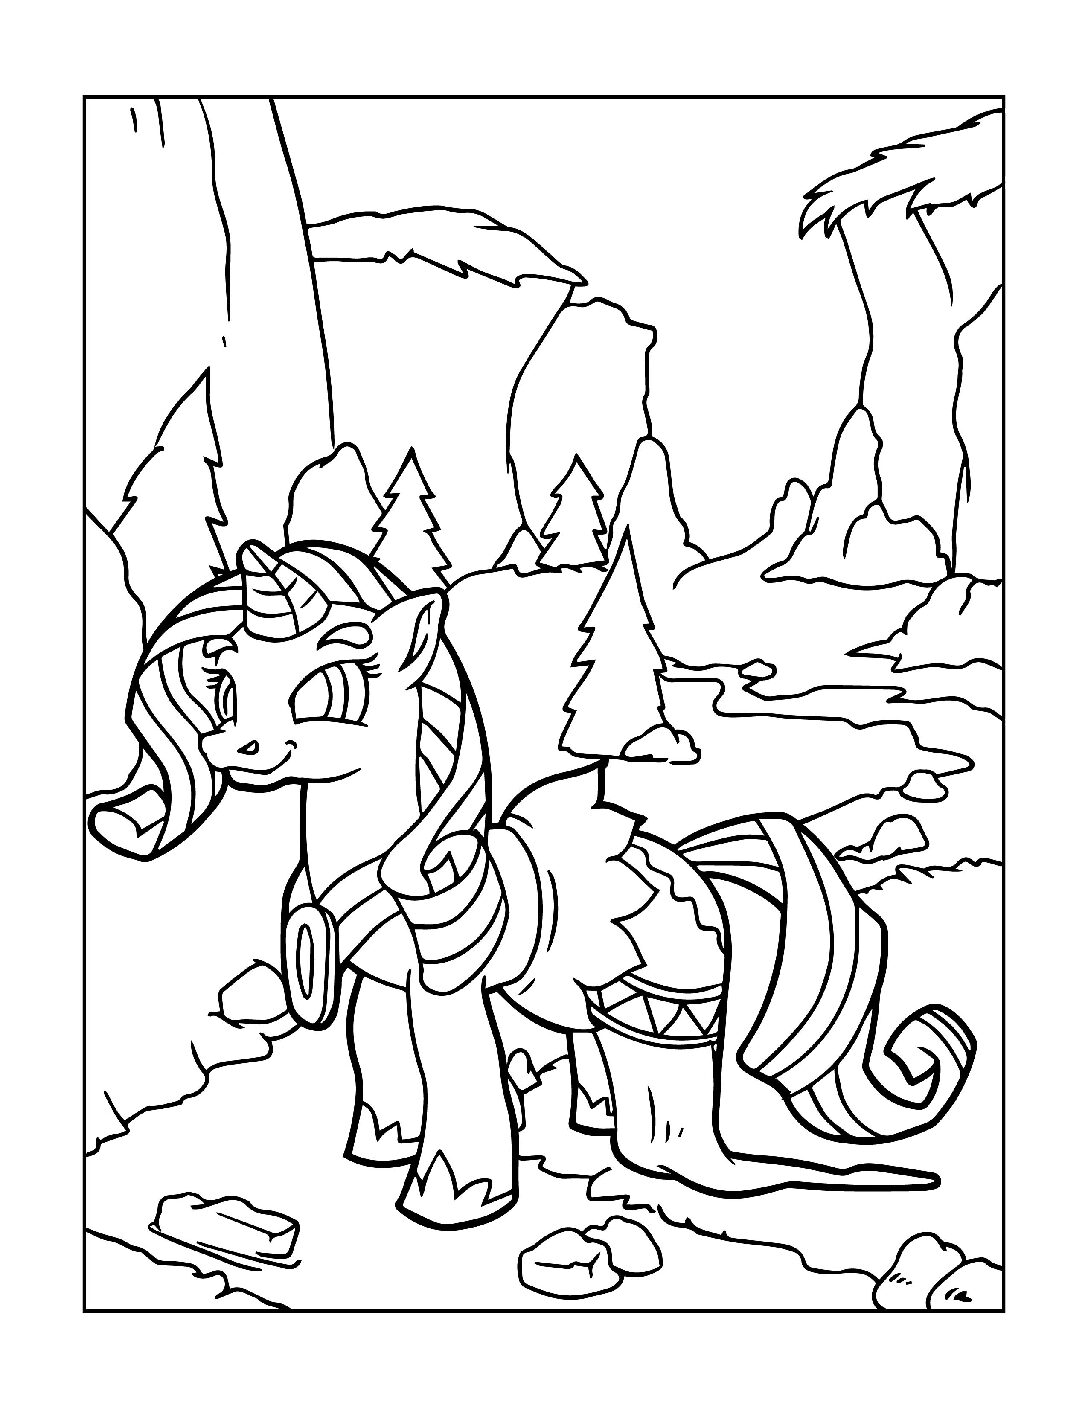 Coloring-Pages-Unicorns-8-pdf Free Printable Unicorn Colouring Pages